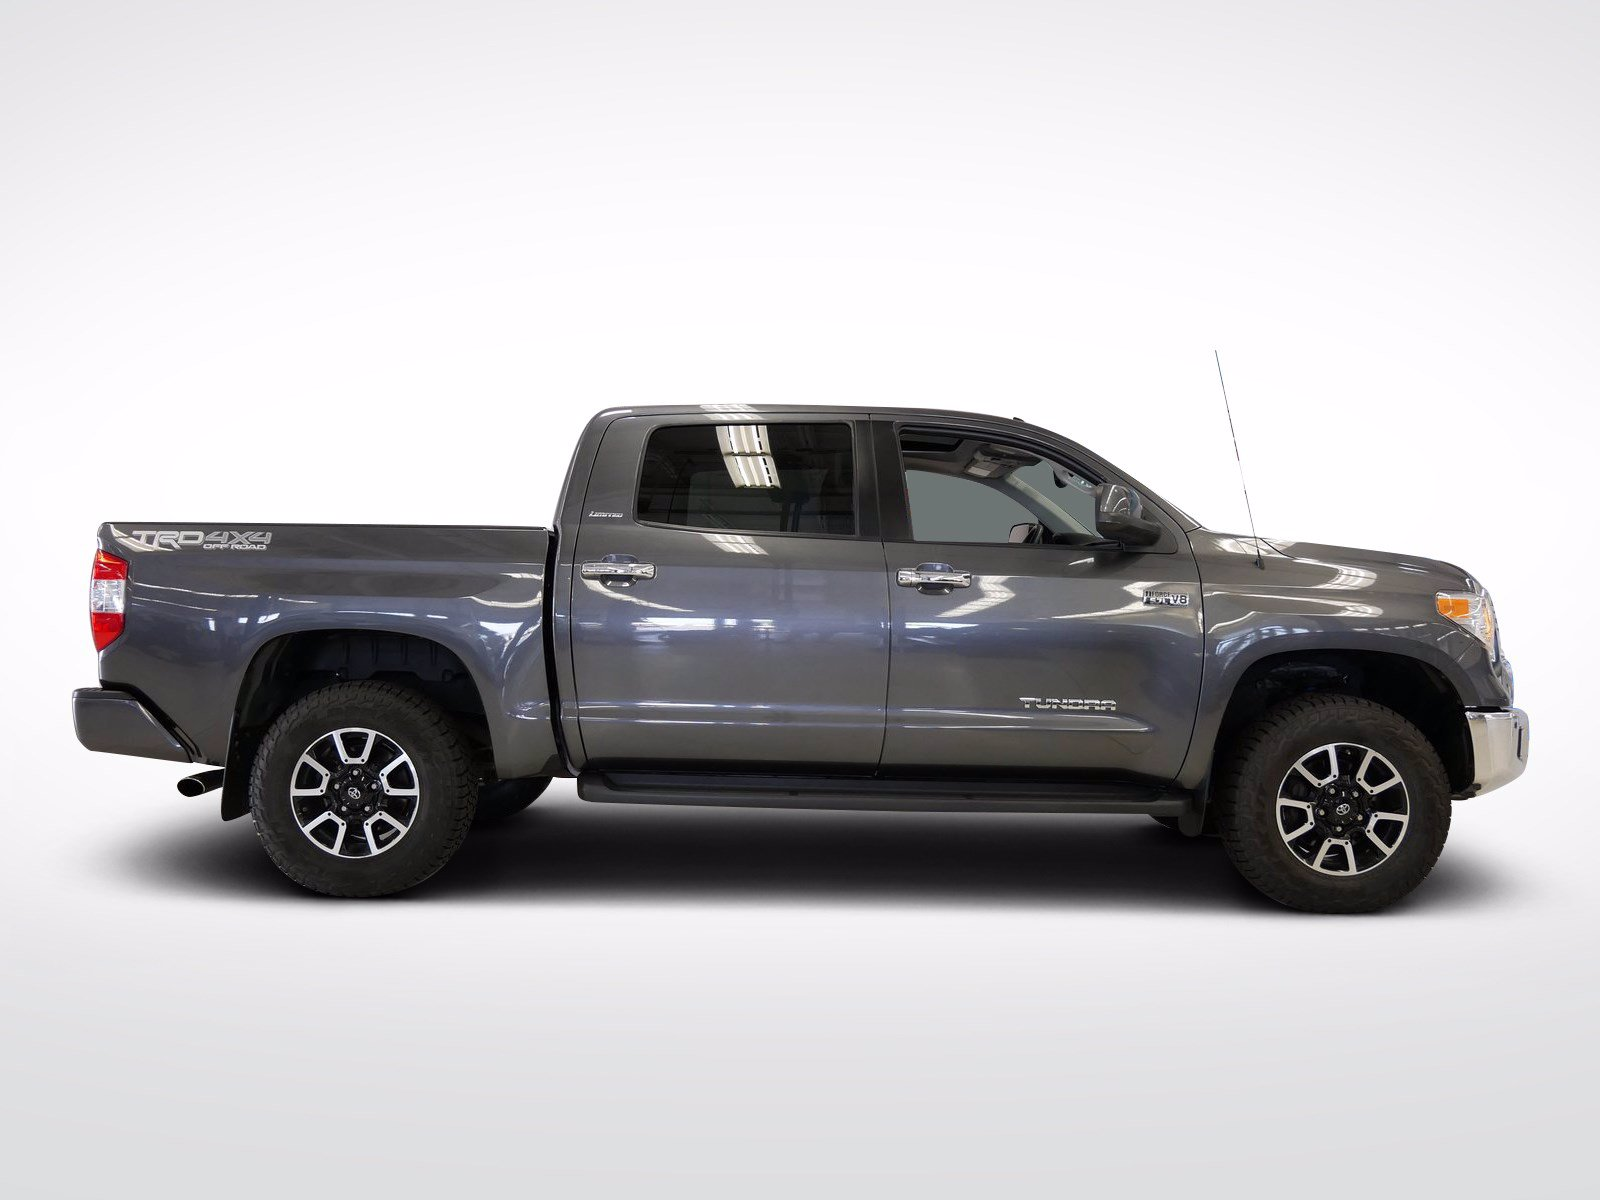 Used 2016 Toyota Tundra Limited with VIN 5TFHW5F14GX494816 for sale in Willmar, Minnesota